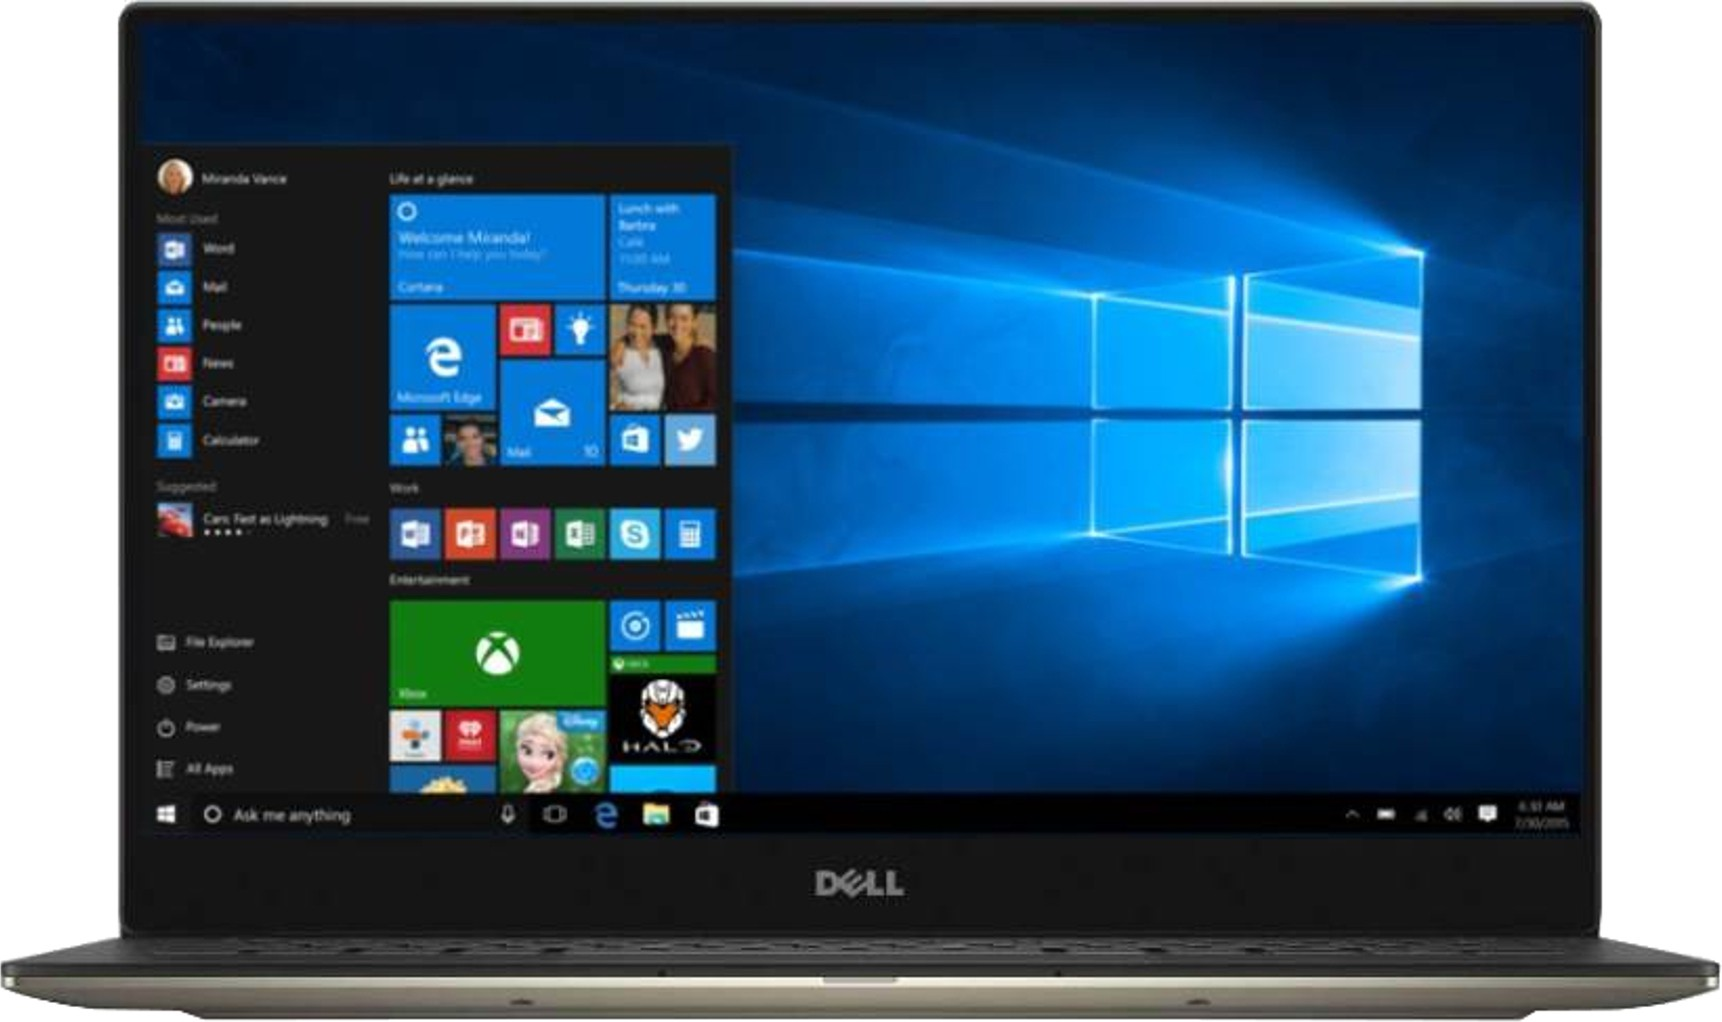 Dell Xps 13 Core I7 8th Gen 9370 Thin And Light Laptop